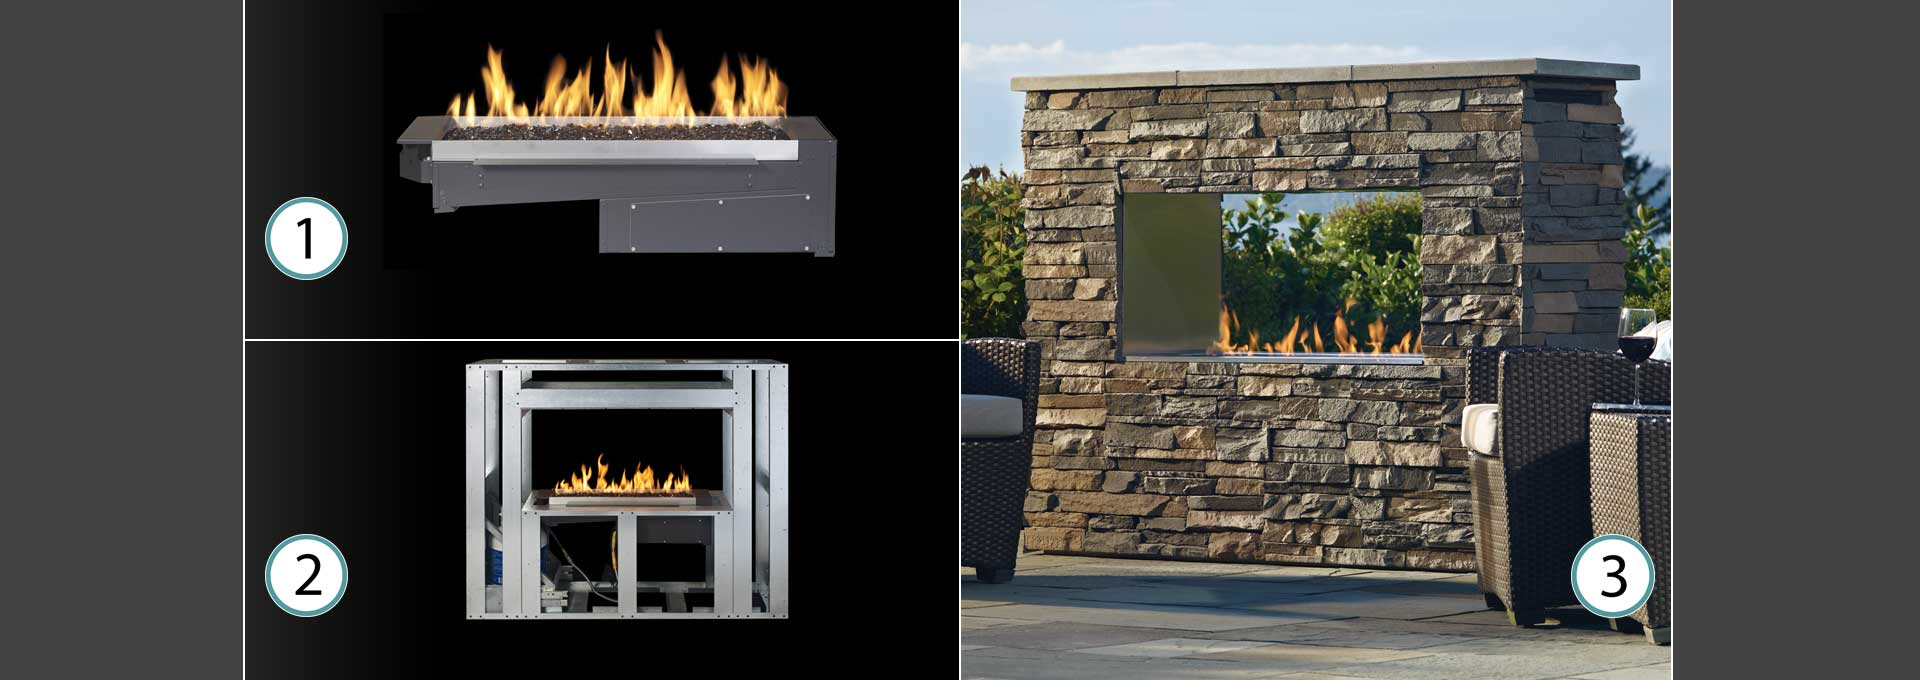 Outdoor Gas Fireplaces Outdoor Gas Fireplaces Firepits Firetables Regency Fireplace